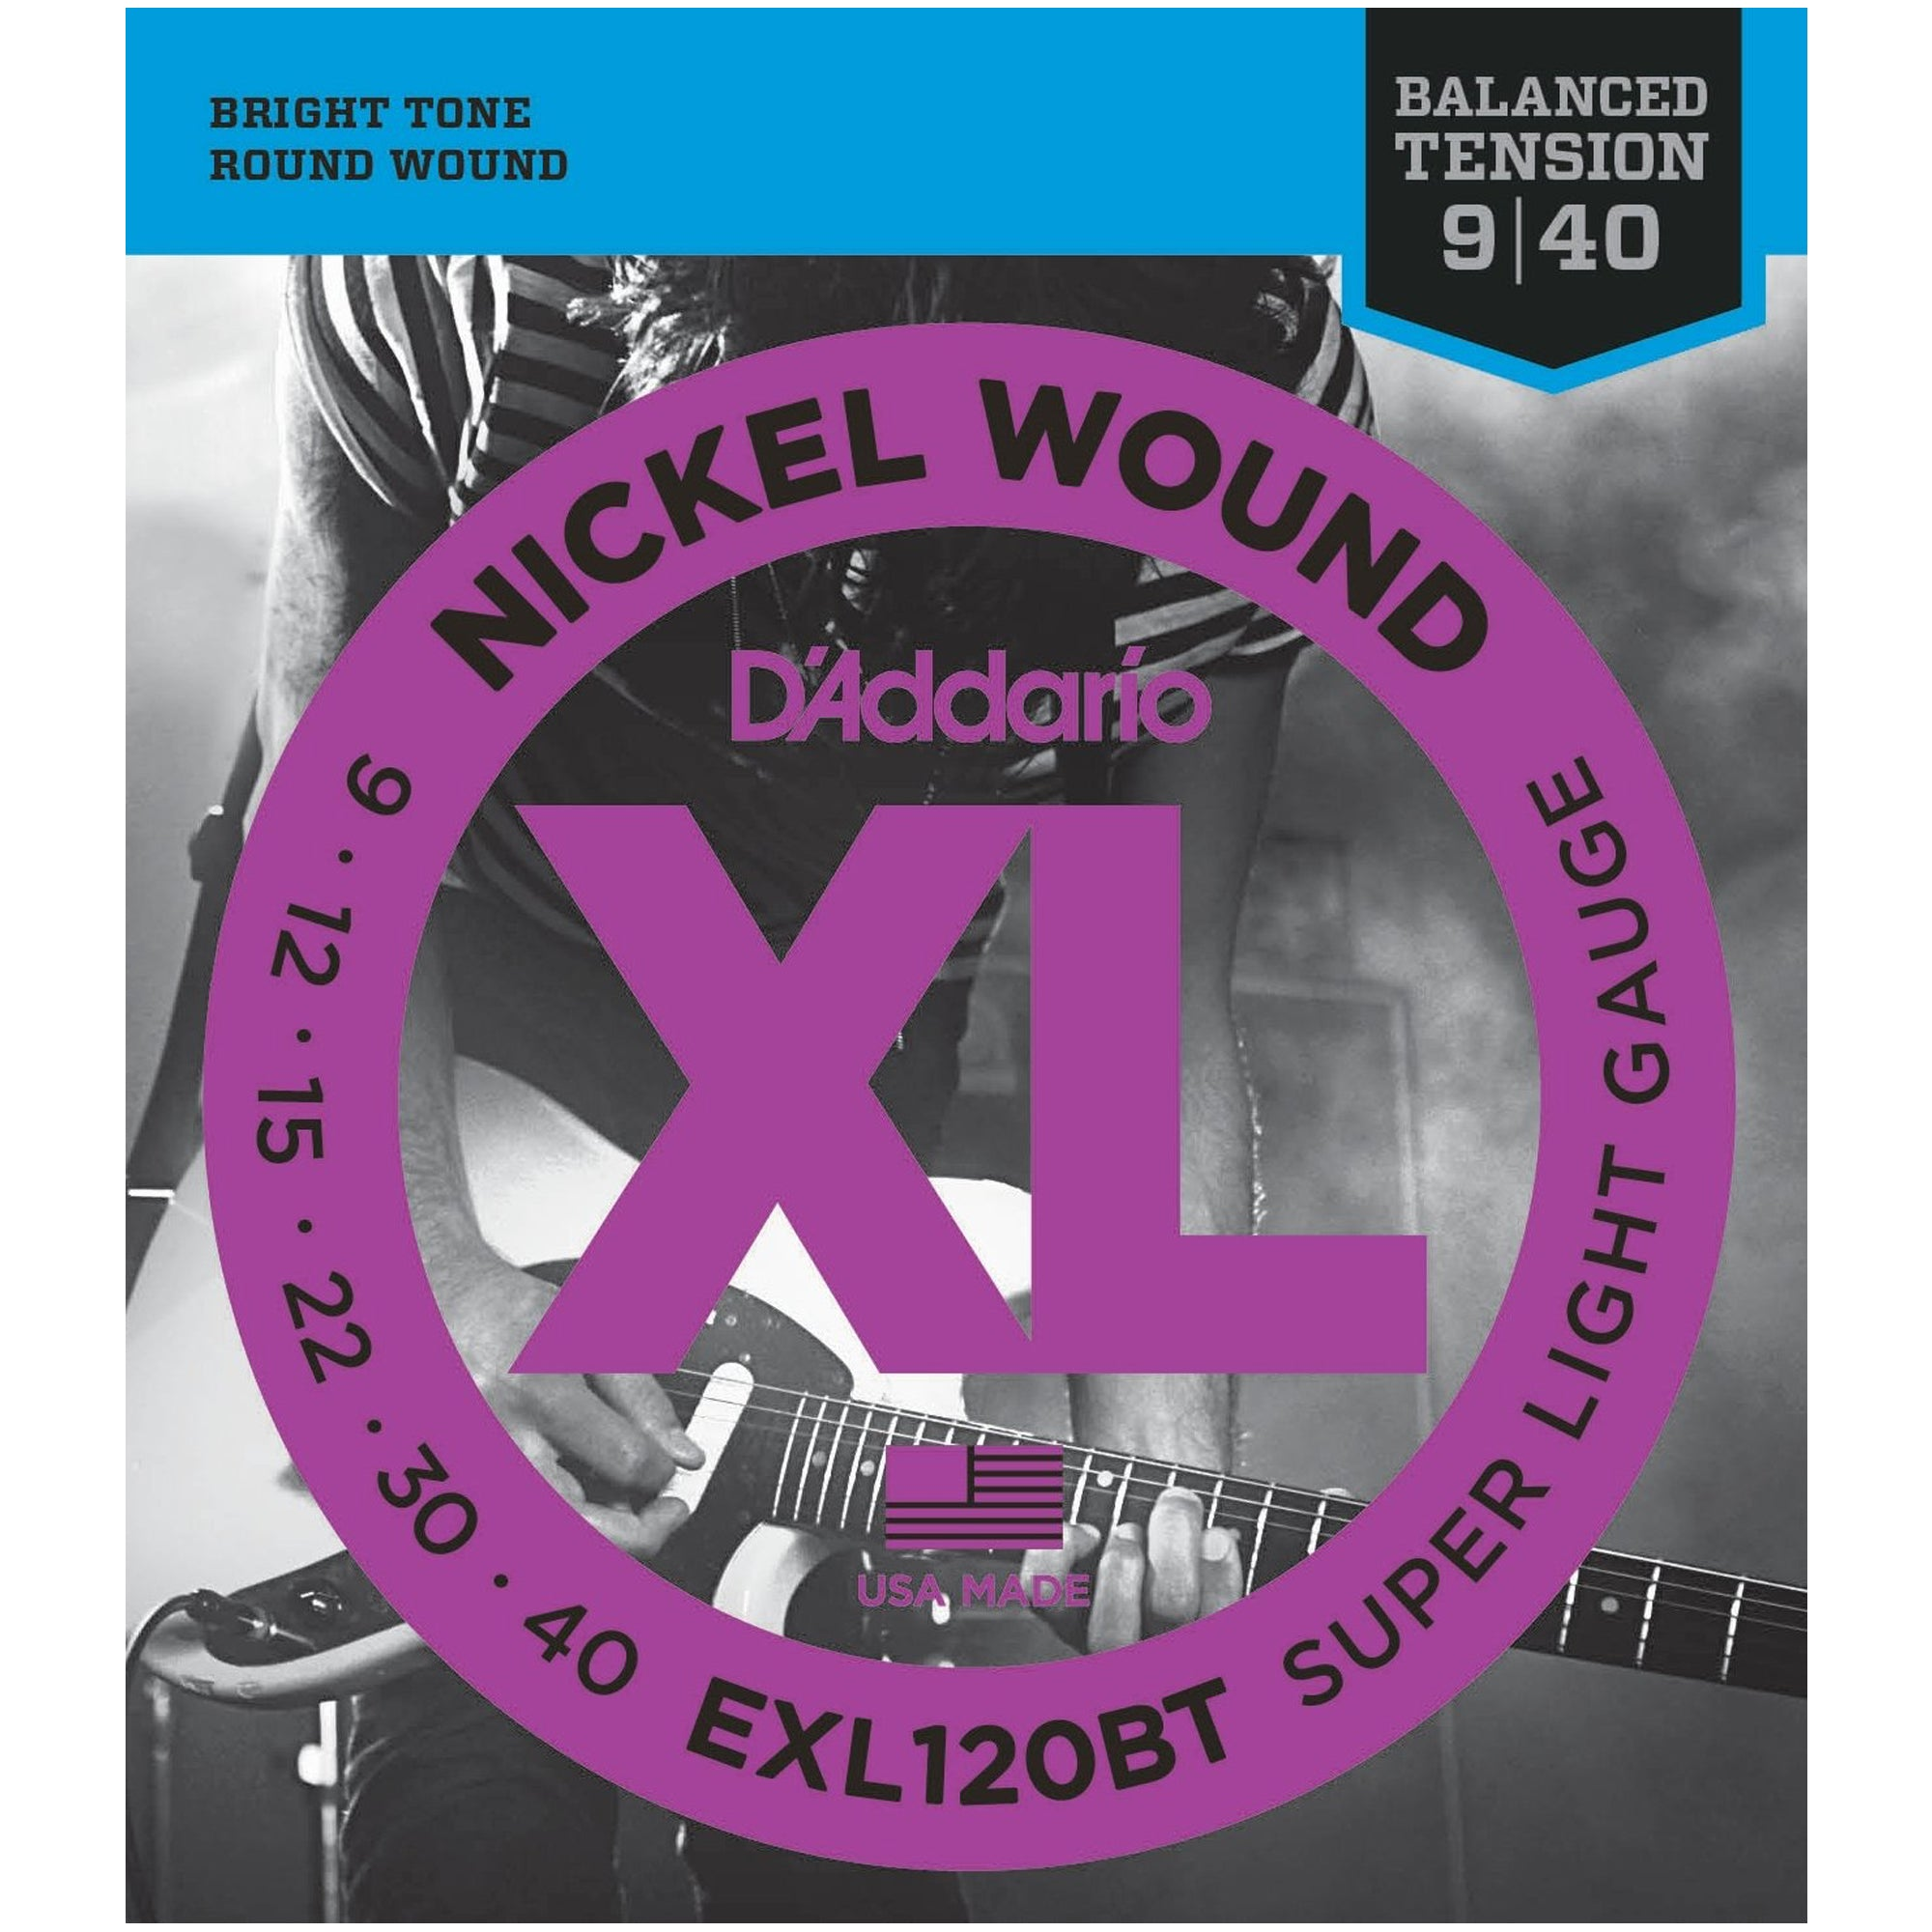 D'Addario 9-40 Balanced Tension Electric Guitar Strings